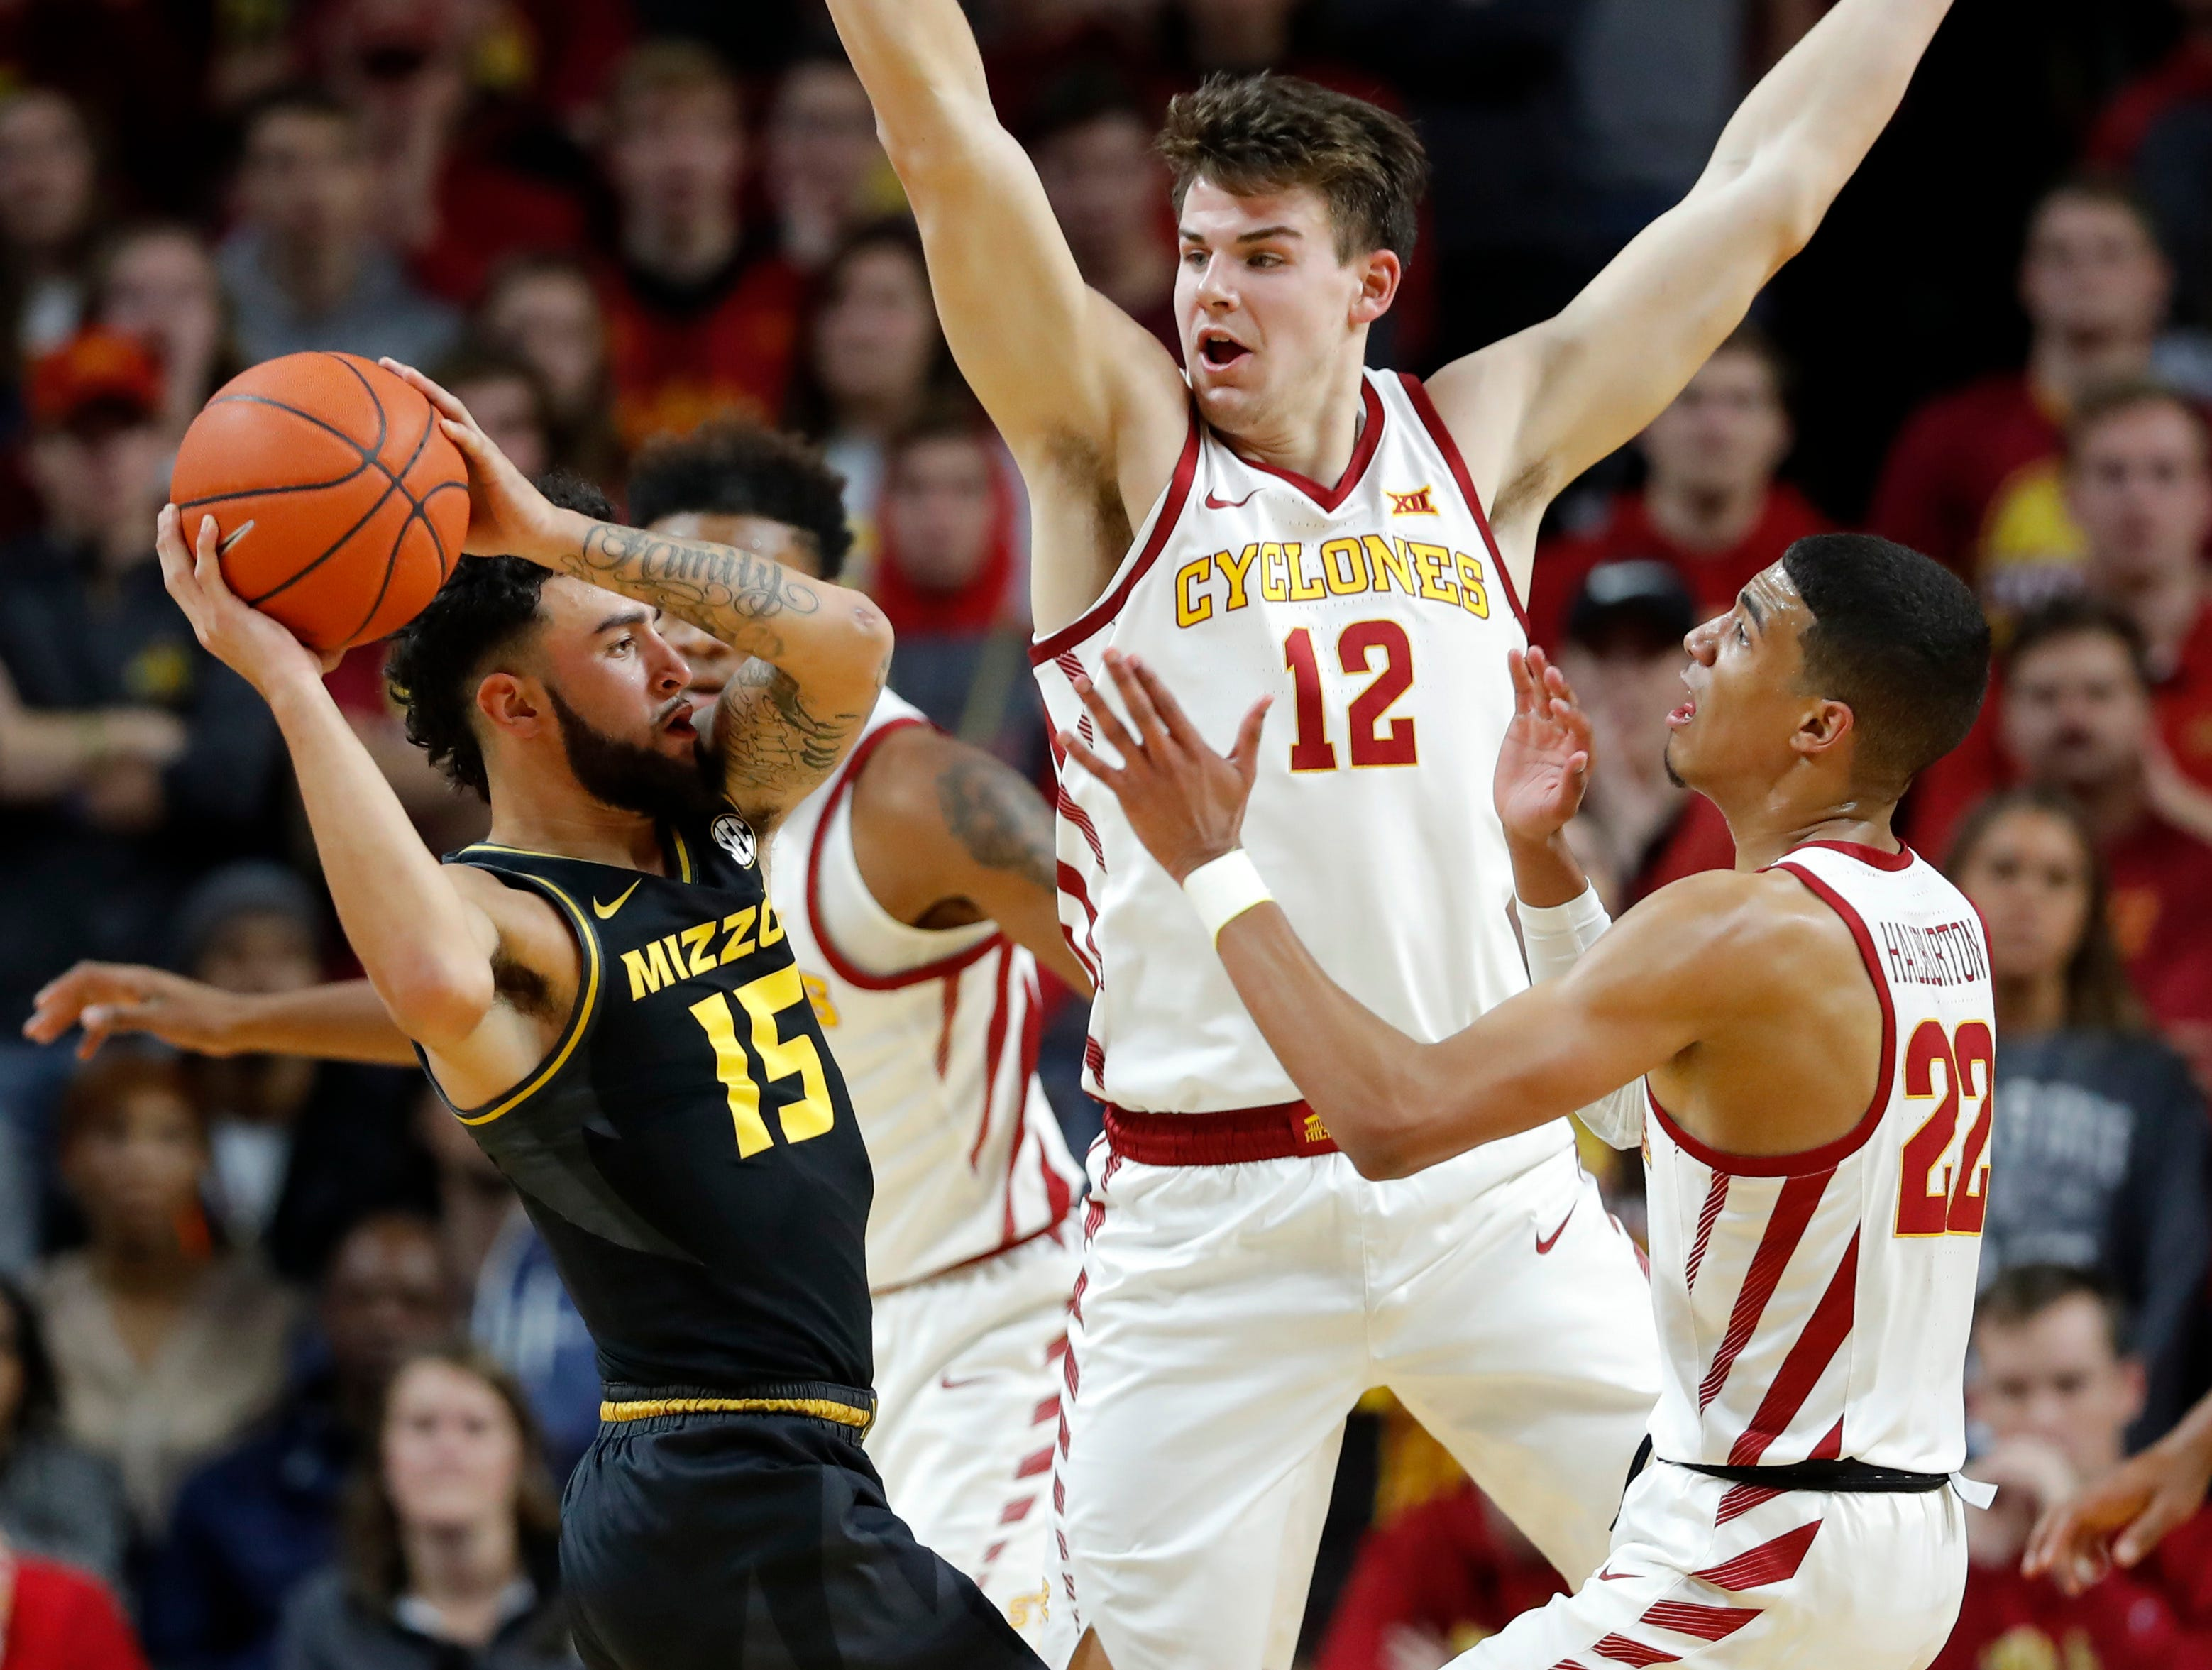 Missouri guard Jordan Geist (15) tries to pass around Iowa State forward Michael Jacobson (12) and guard Tyrese Haliburton, right, during the first half of an NCAA college basketball game, Friday, Nov. 9, 2018, in Ames, Iowa.